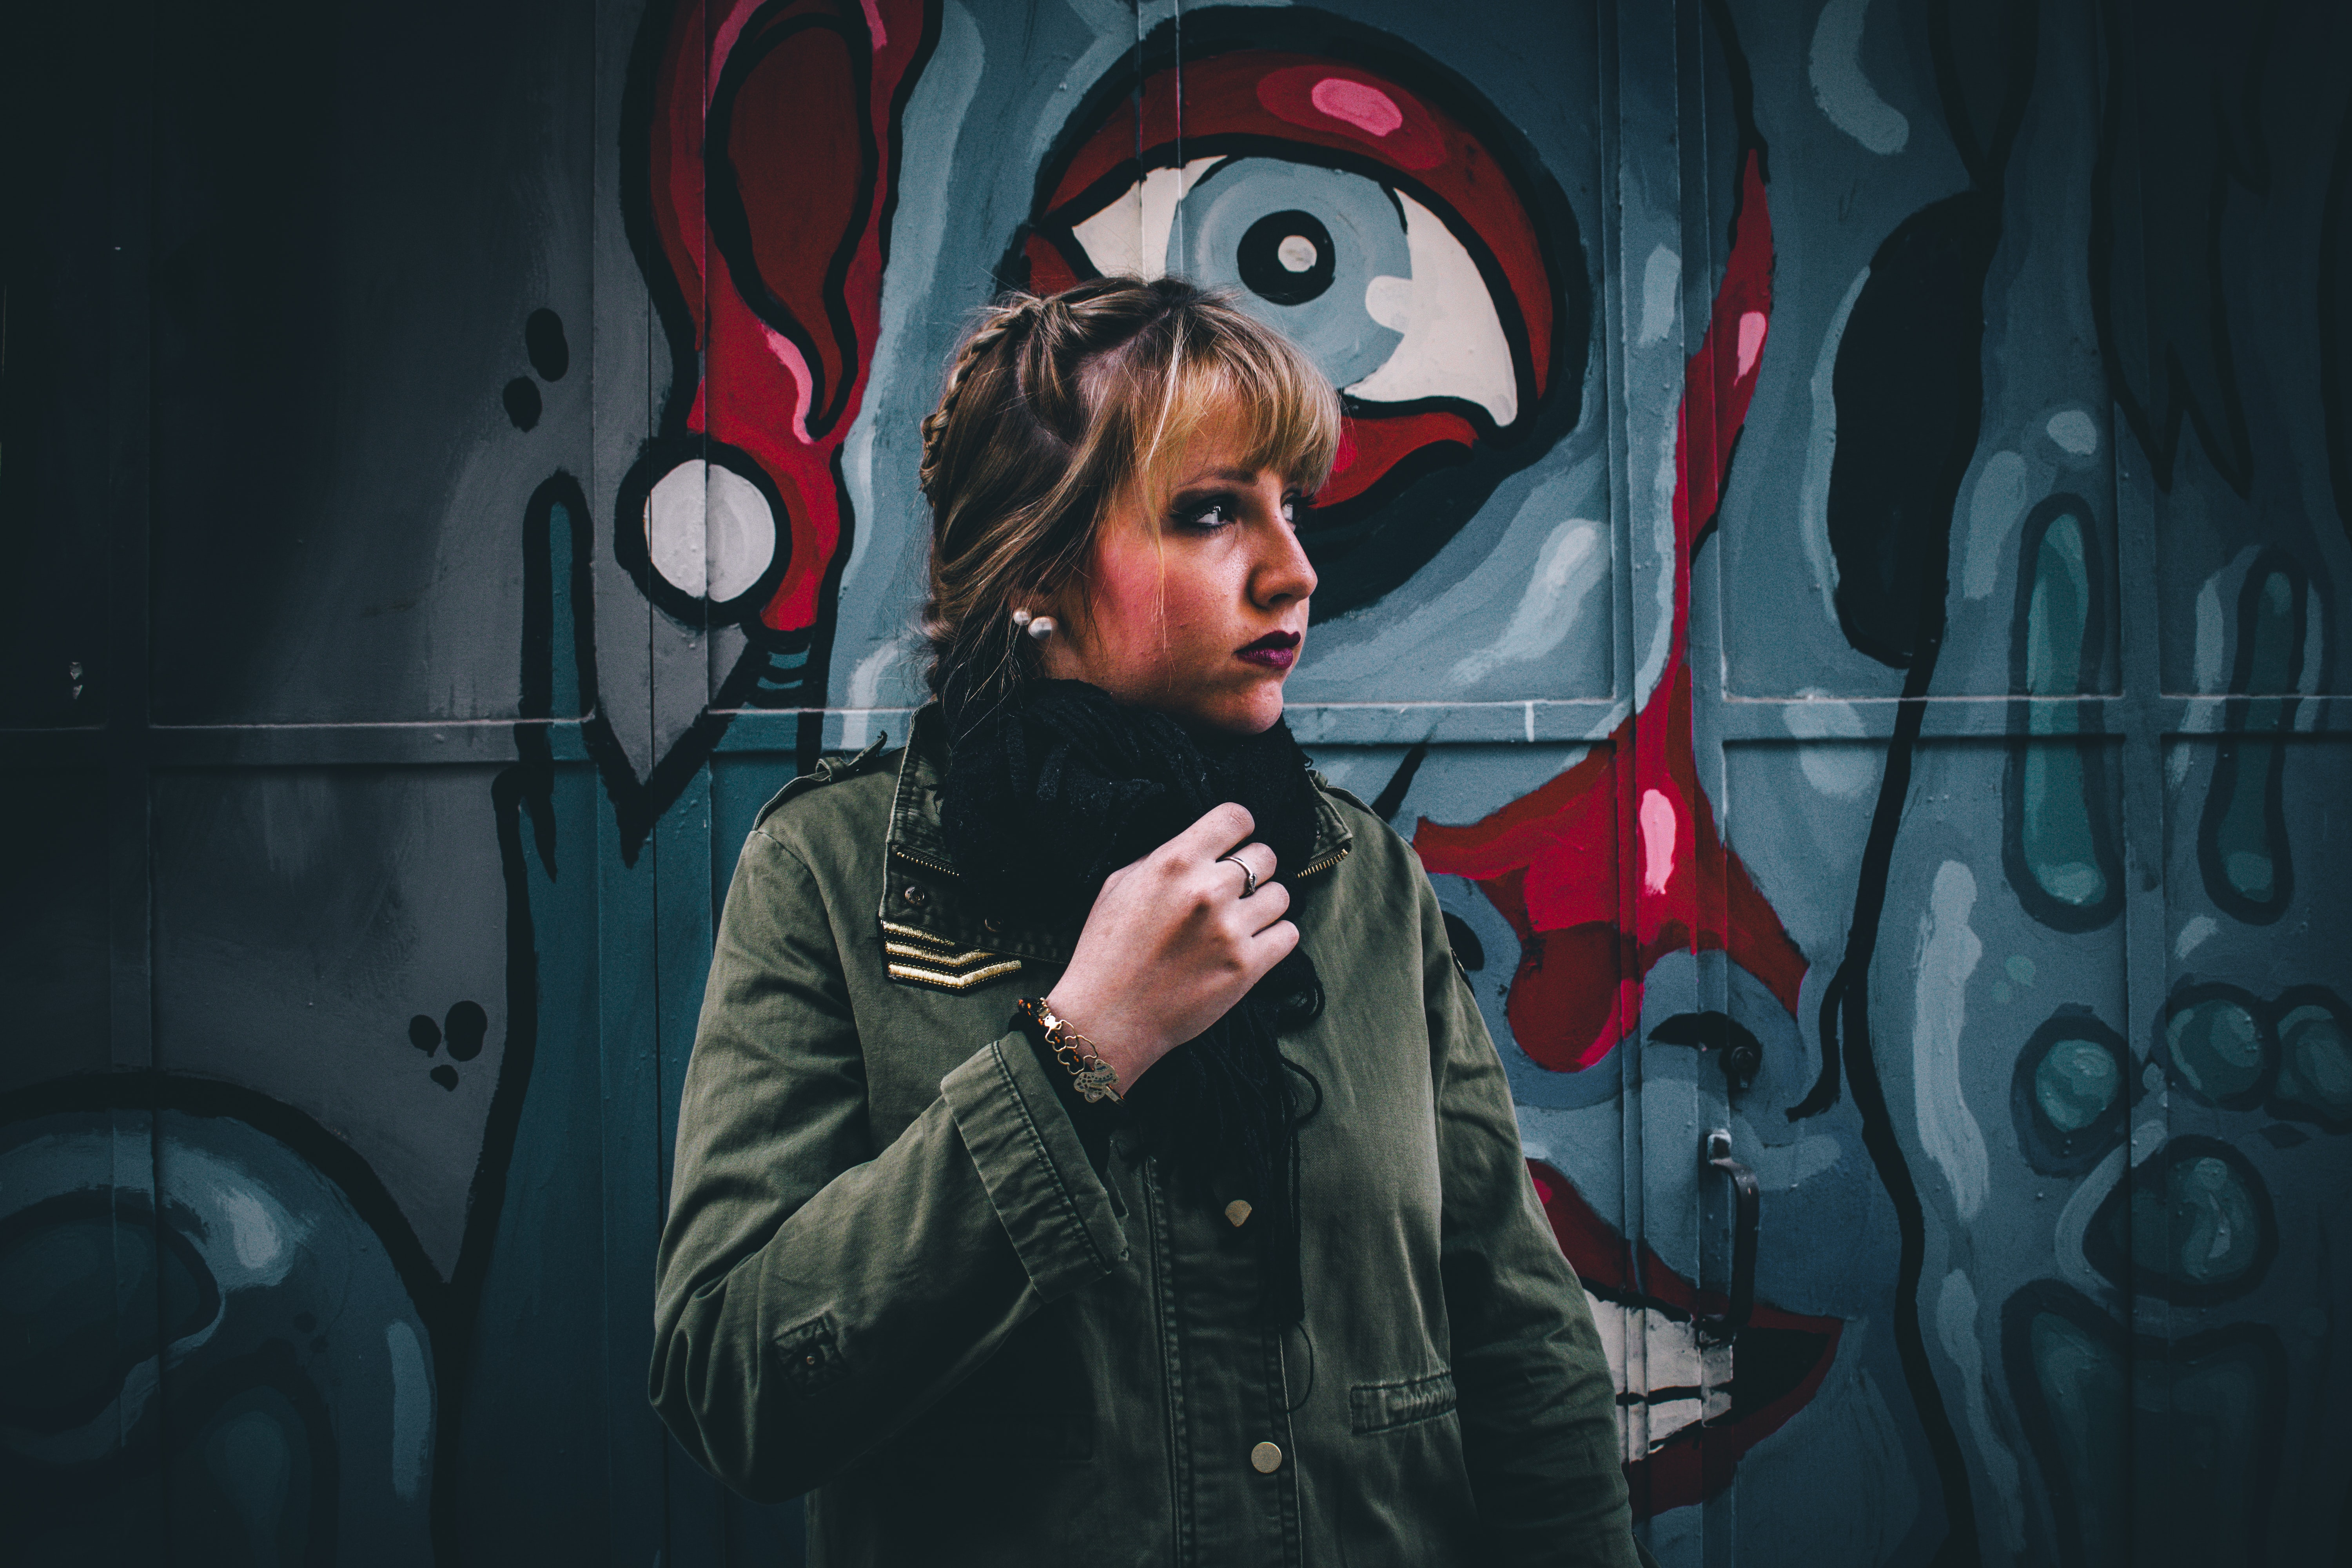 Young attractive blonde woman in front of haunting graffiti with eye in Salamanca